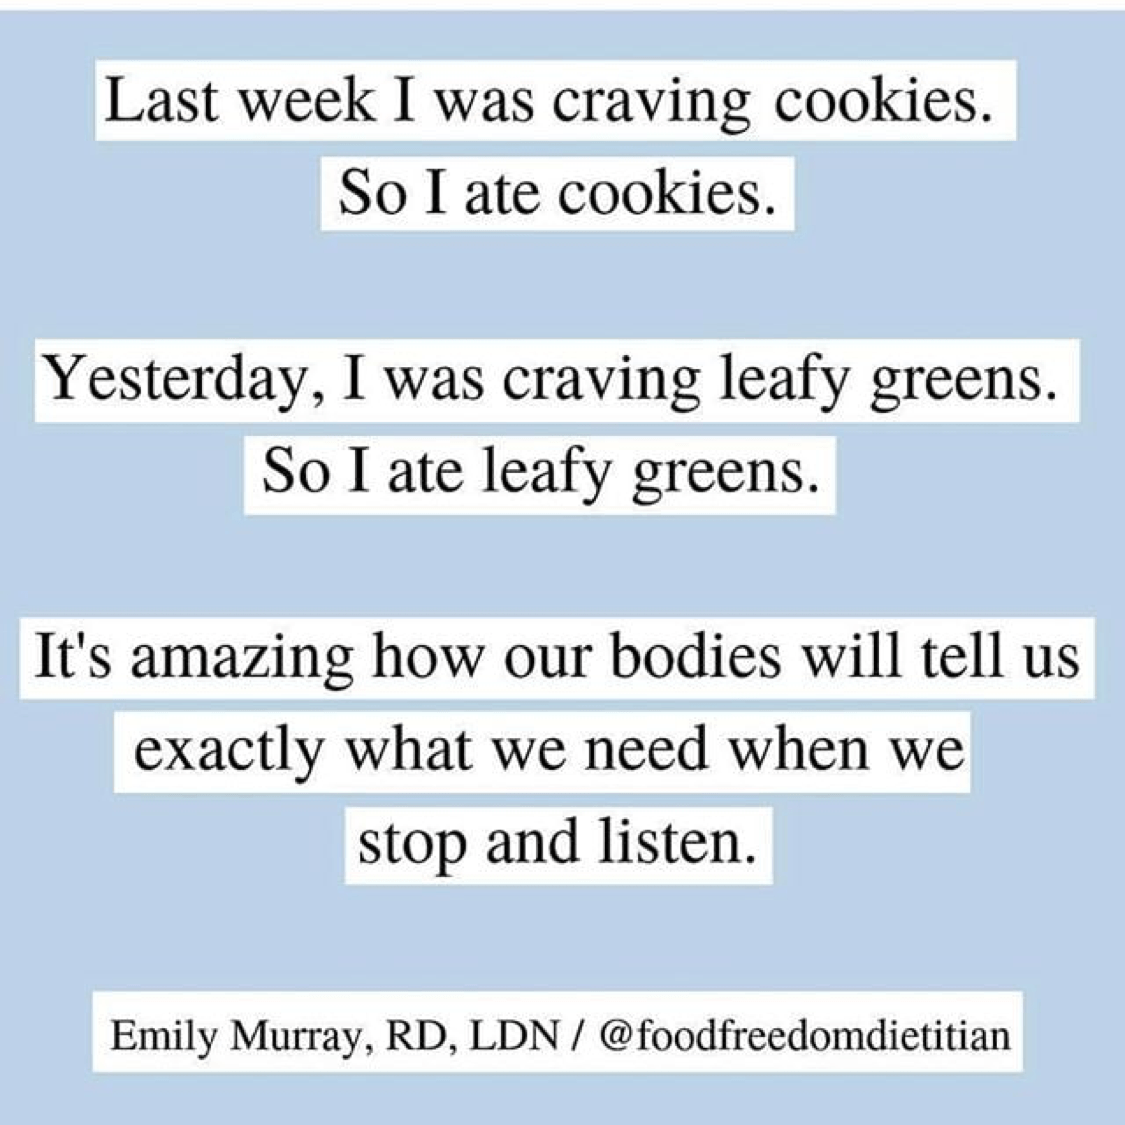 """""""Last week I was craving cookies. So I ate cookies. ..."""" and other intuitive eating thoughts from Emily Murray, RD, LDN @foodfreedomdietitian"""